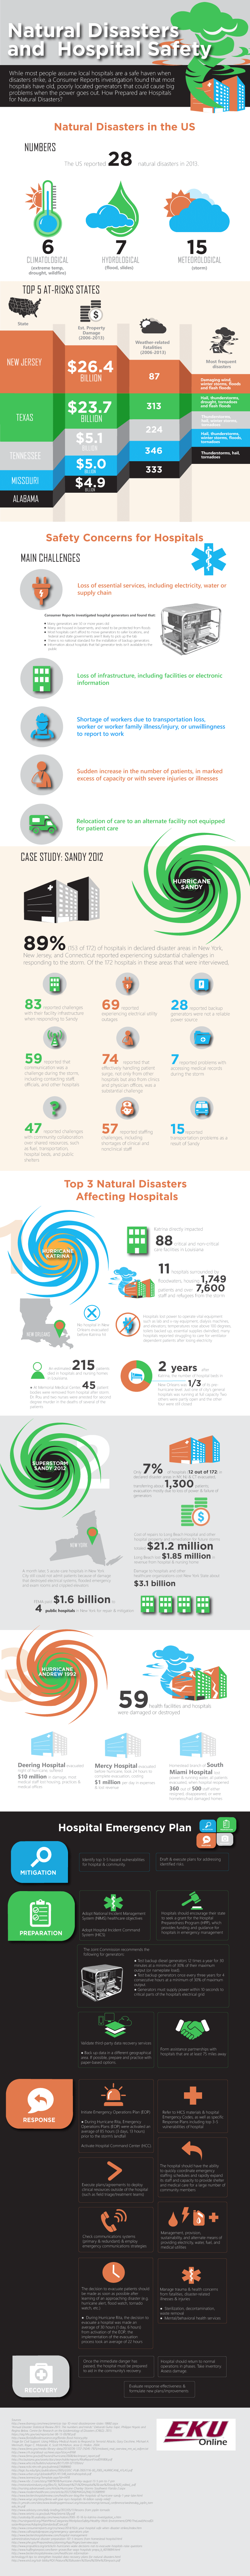 Infographic on National Disasters and Hospital Safety